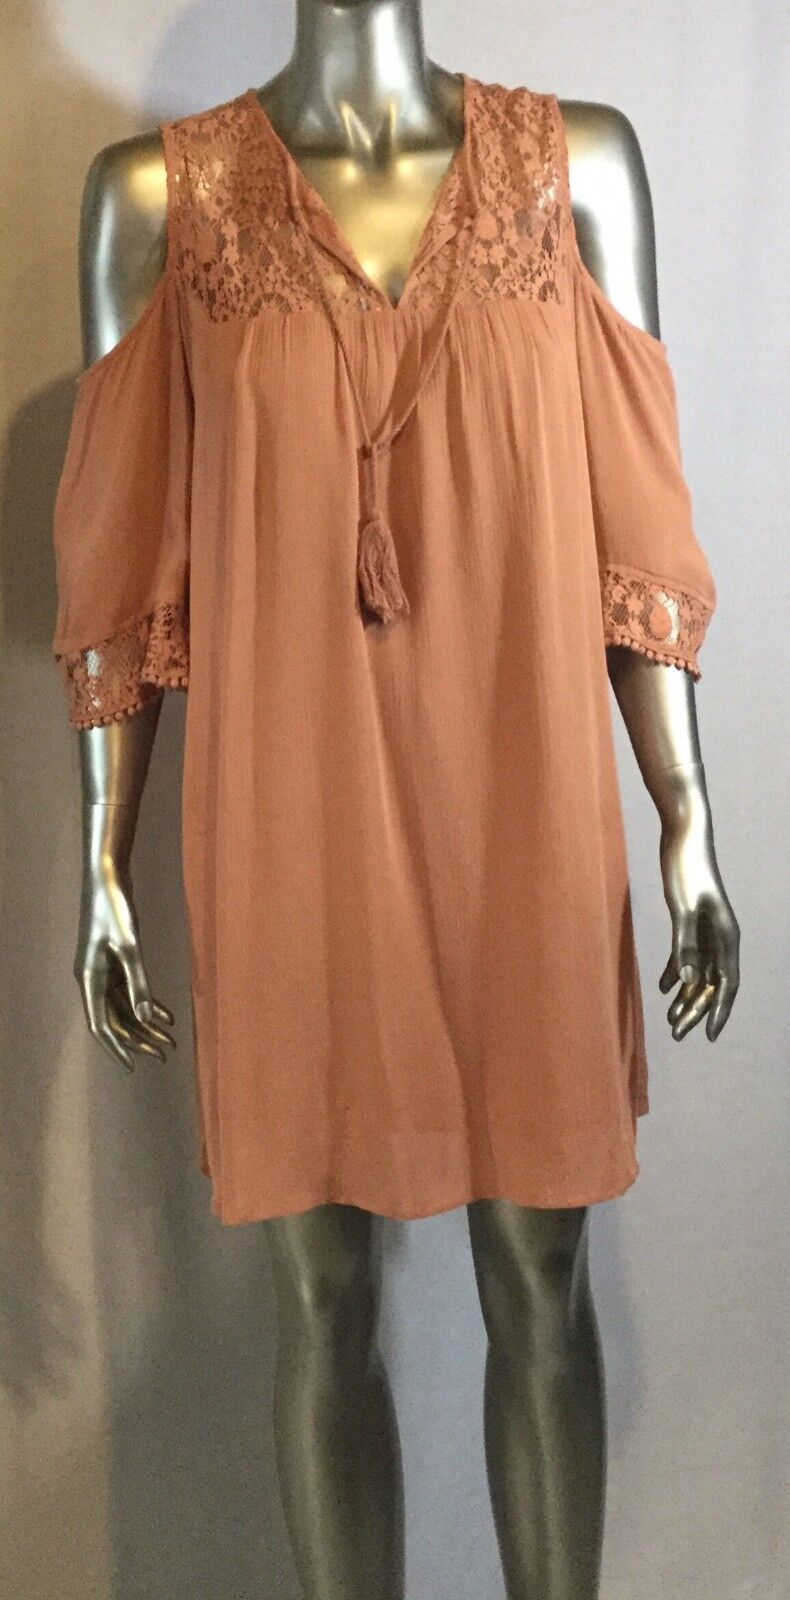 NWT HEARTLOOM Top, Anthropologie Brand, Size Small, Col Peach, Size Small